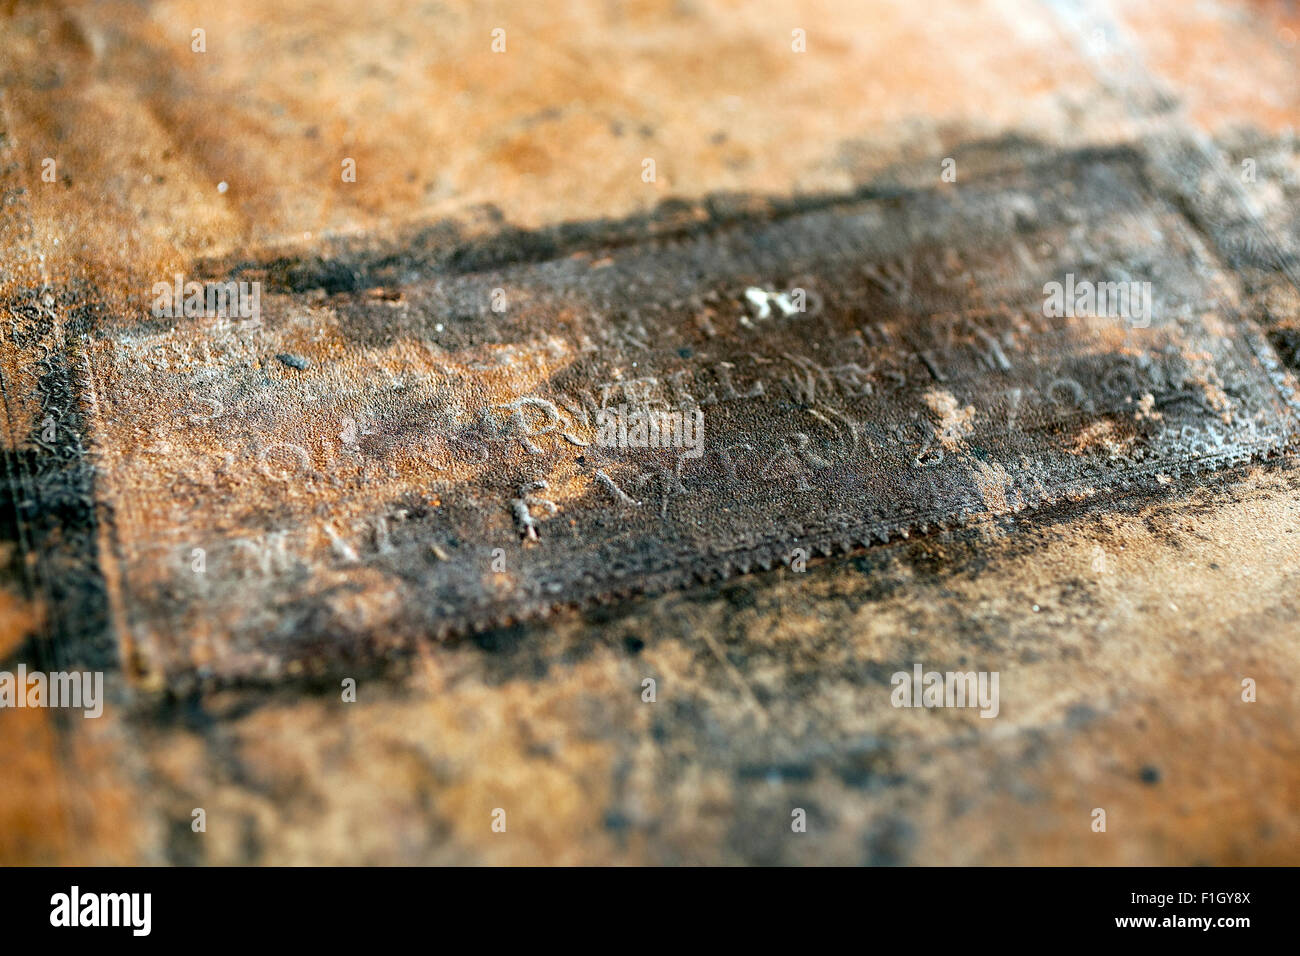 embossing on front cover of the book of common prayer,church of england,psalter or psalms of David, Stock Photo